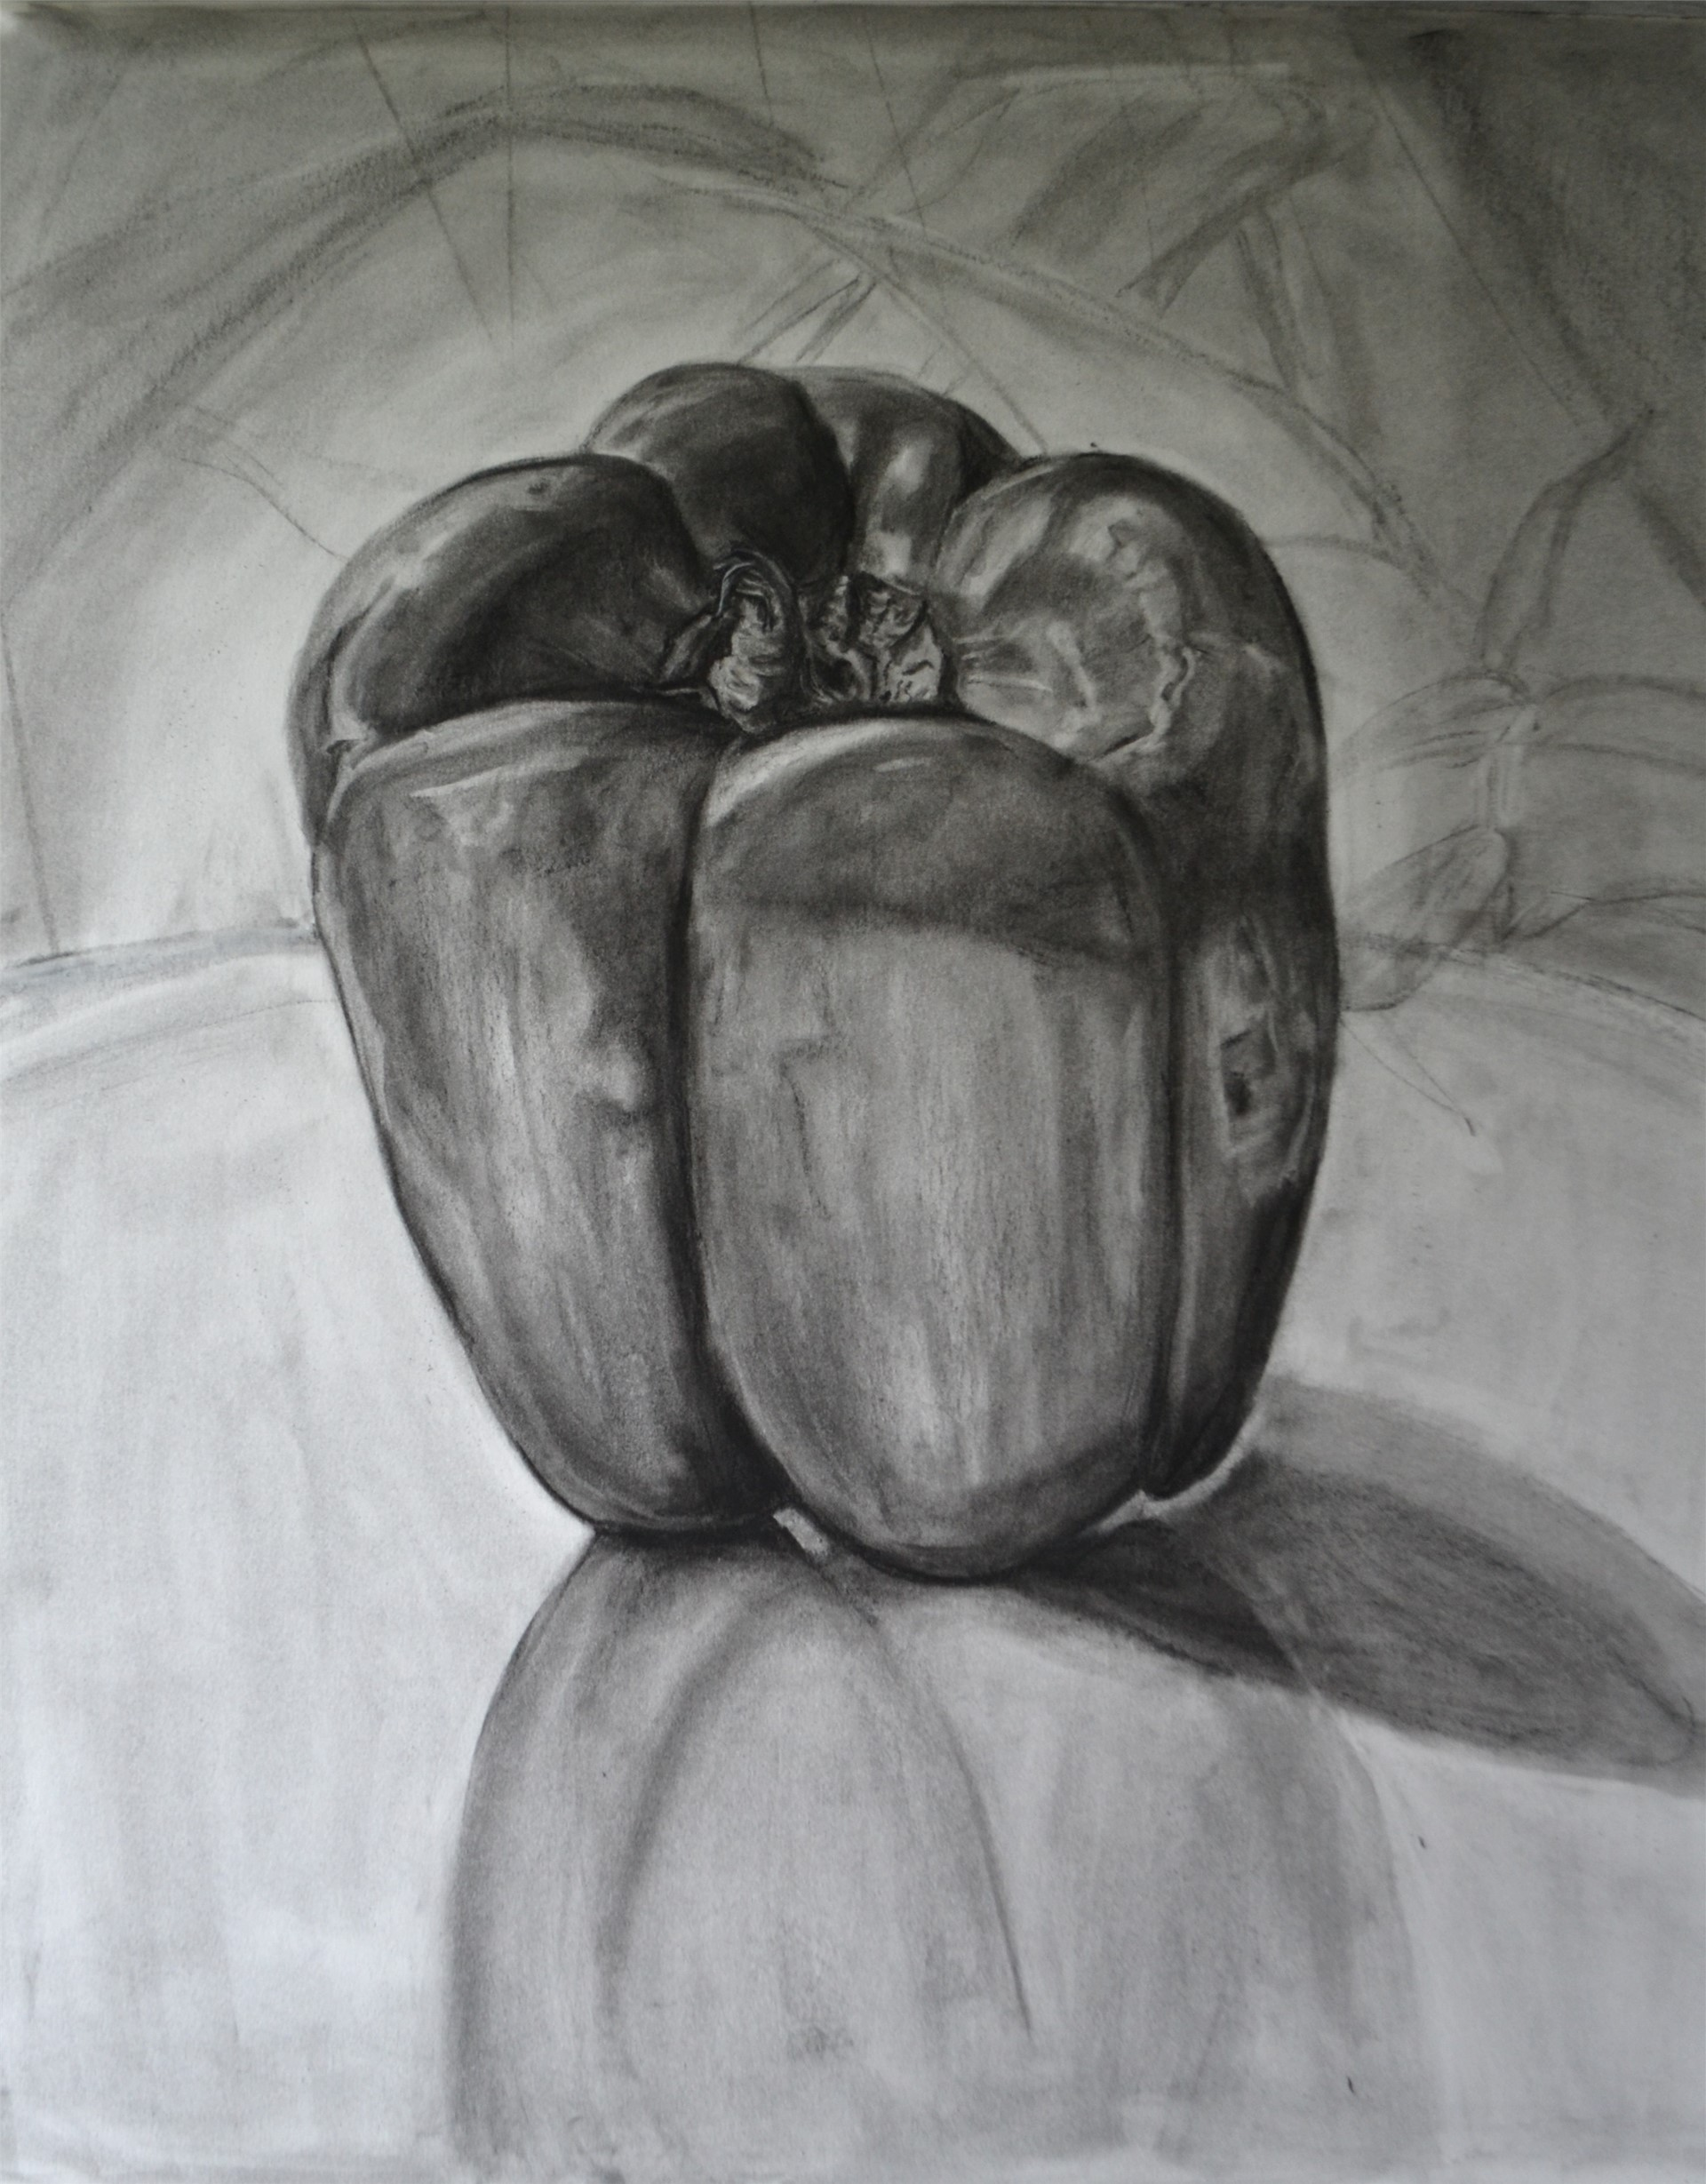 Amanda Rivers, Bell Pepper Study, charcoal on vellum bristol, 25 x 19, 2016